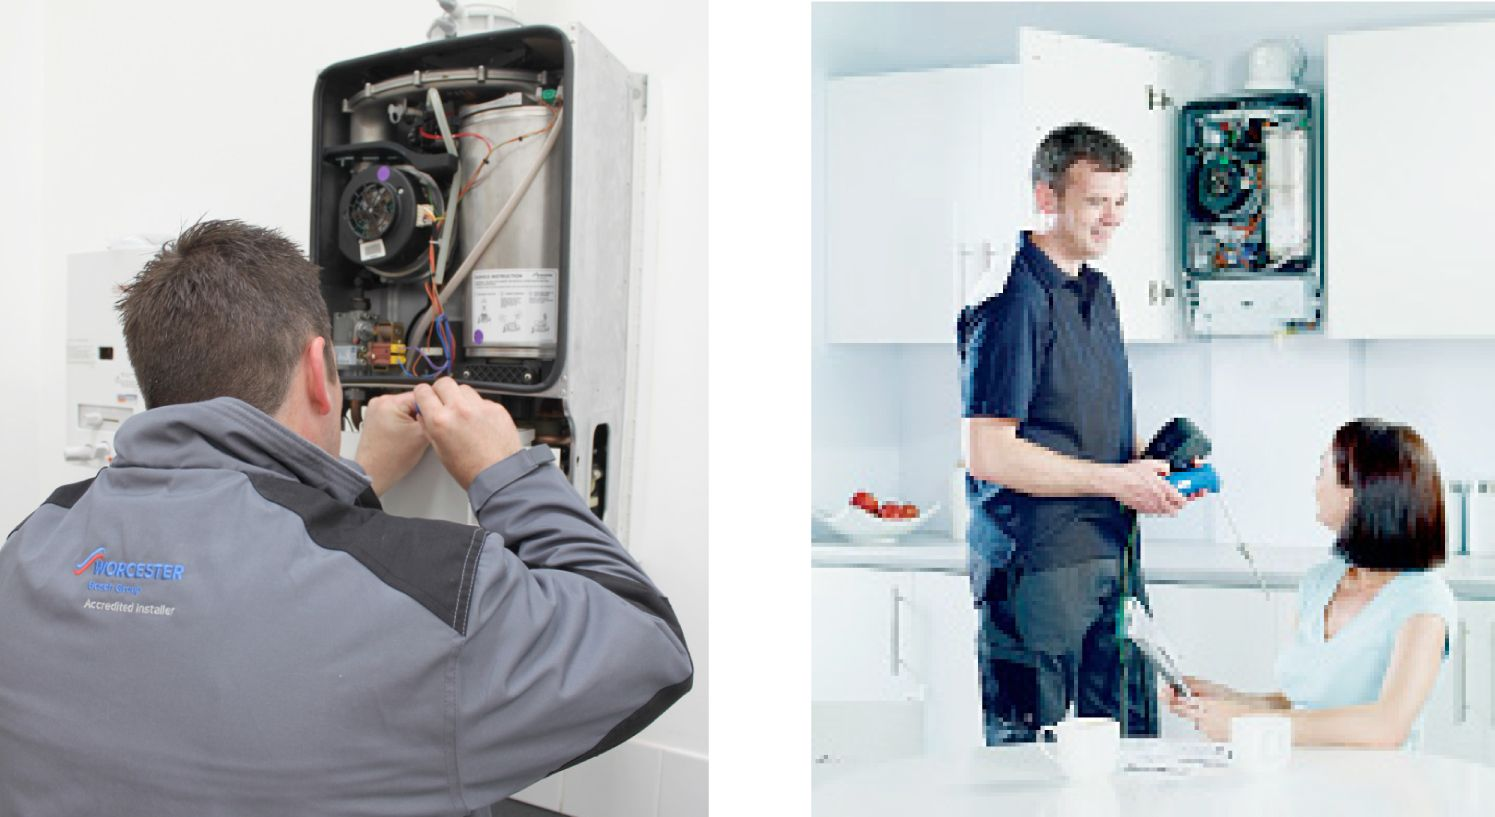 TMS Heating and Plumbing Services Ltd provides LPG oil